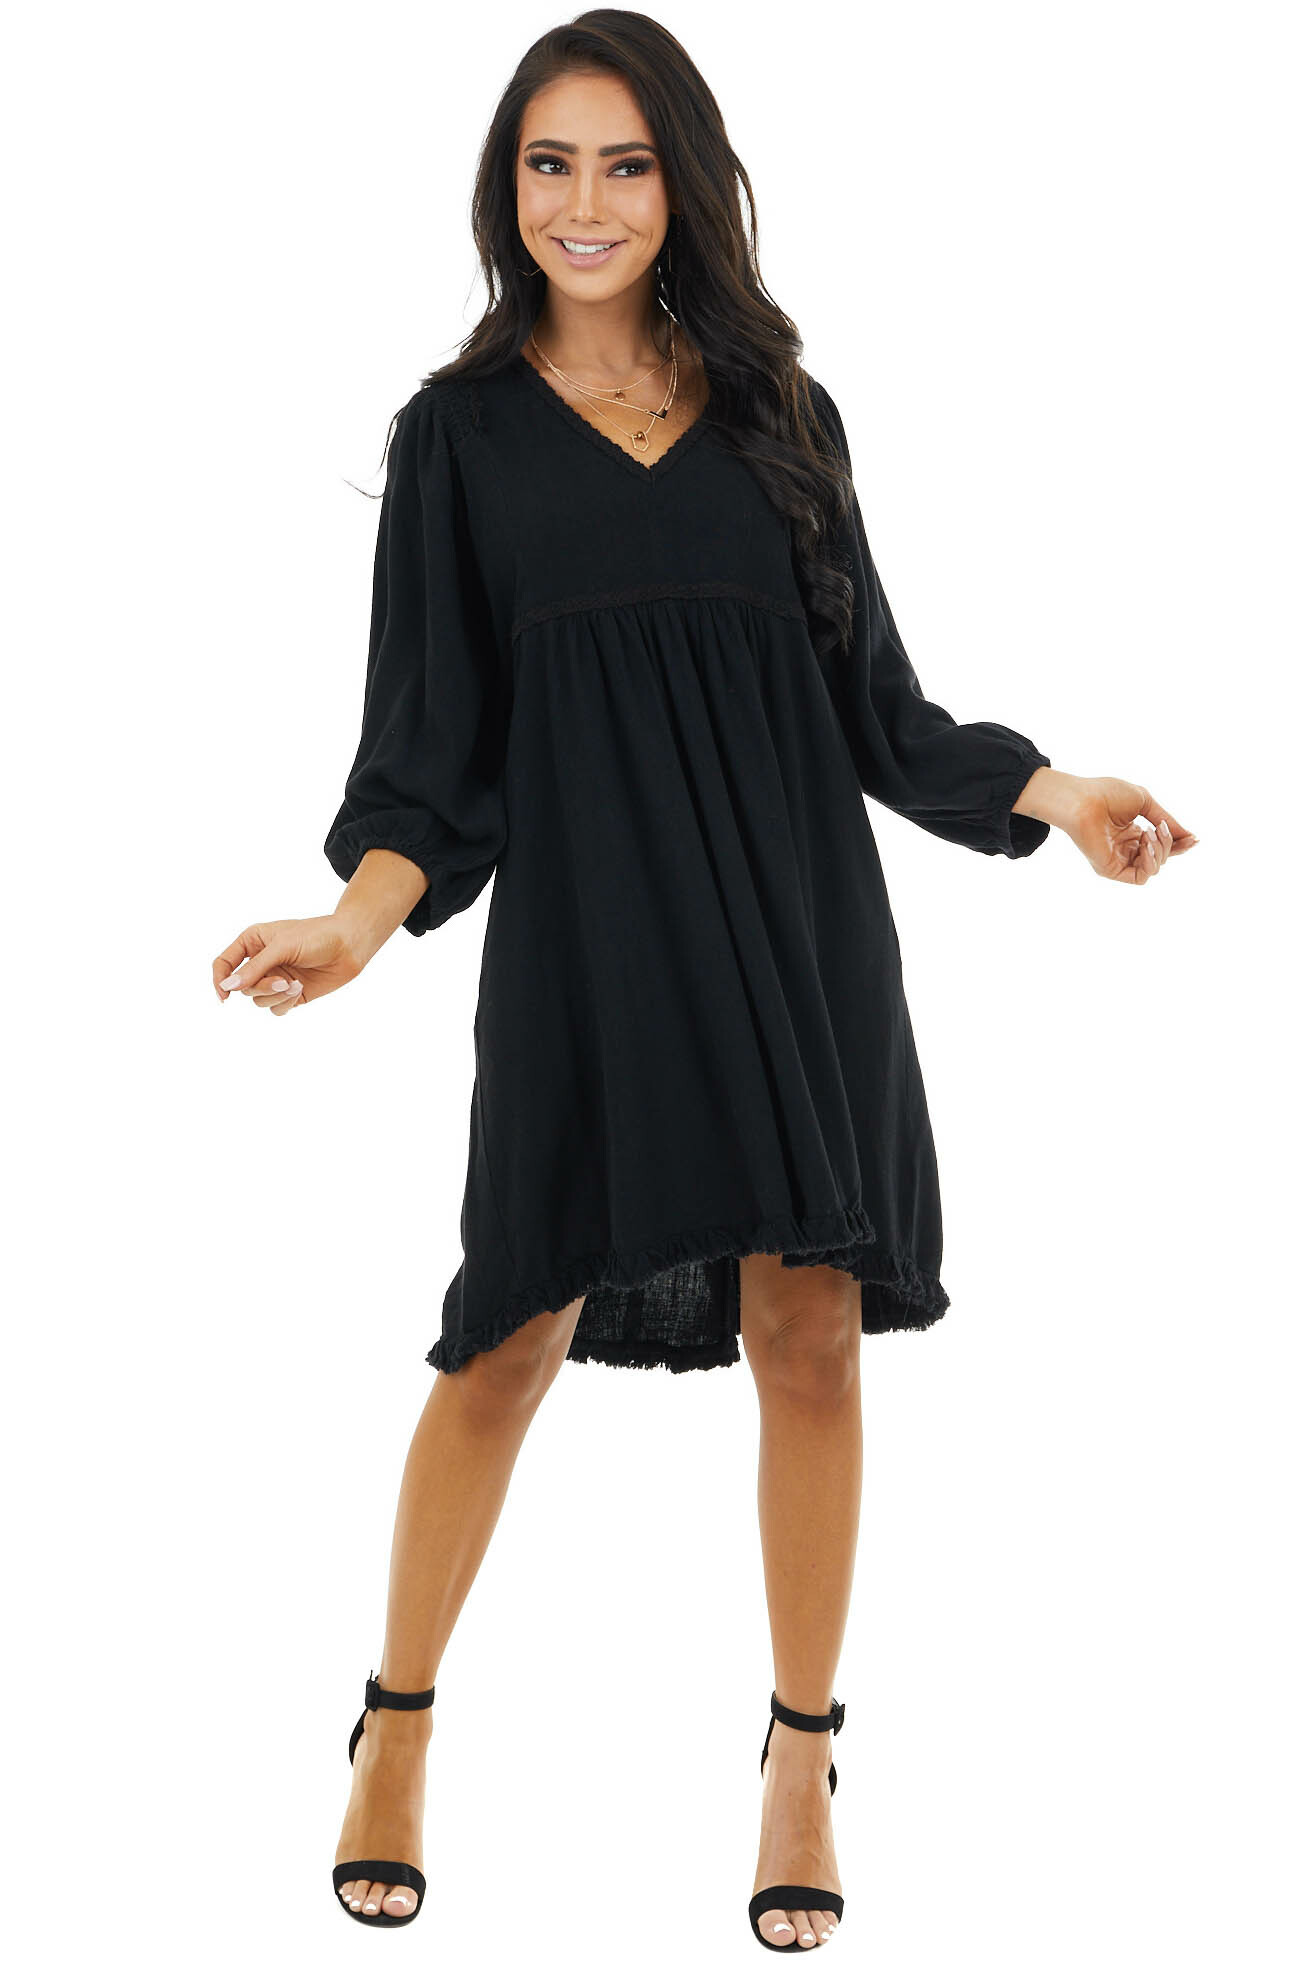 Black Baby Doll Dress with Bubble Sleeves and Frayed Hem